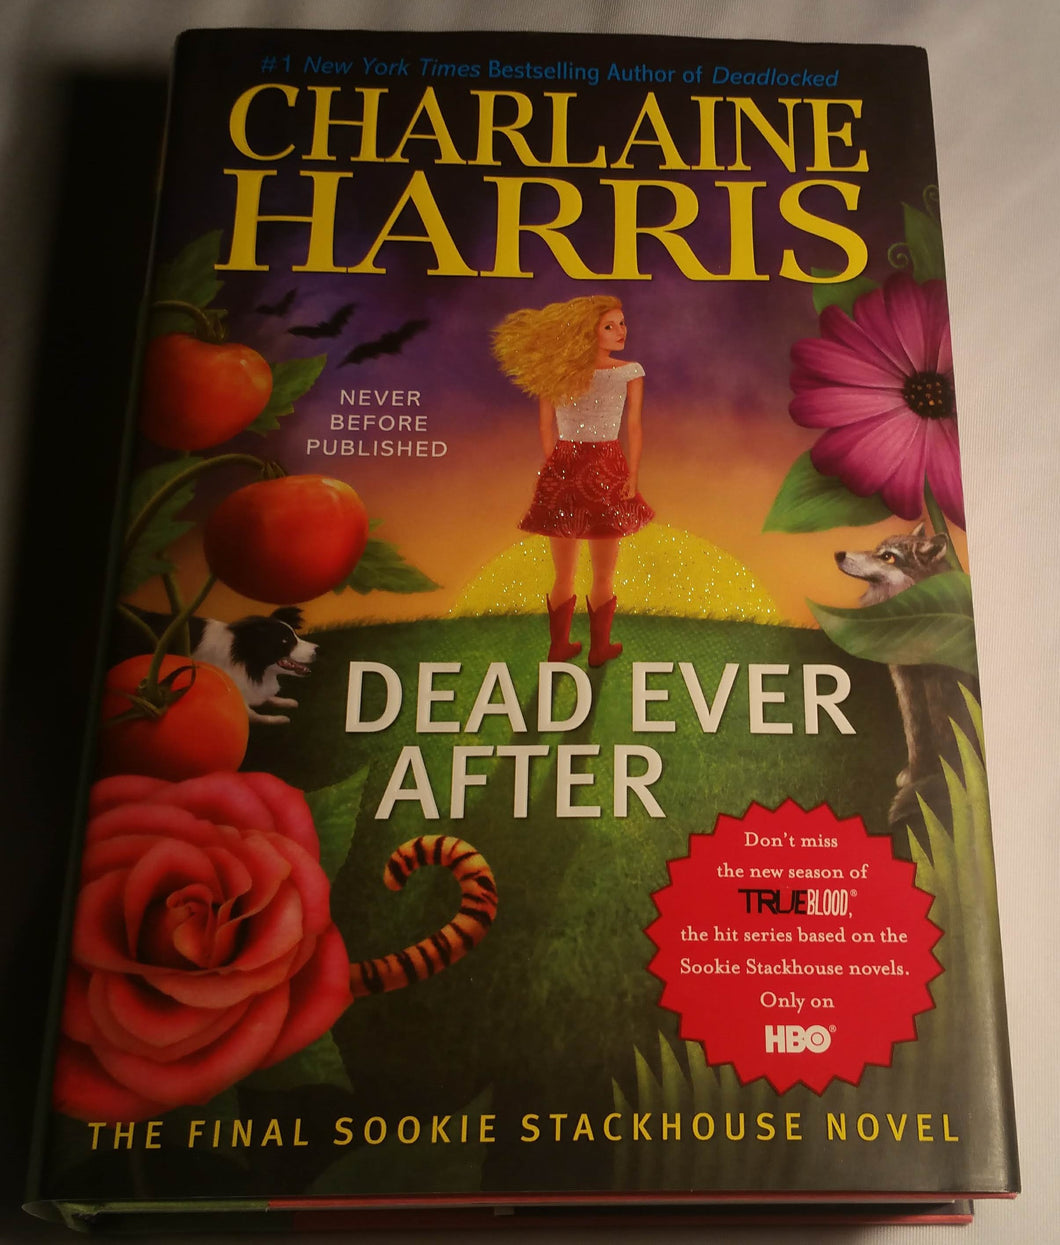 Dead Ever After - The Final Sookie Stackhouse Novel